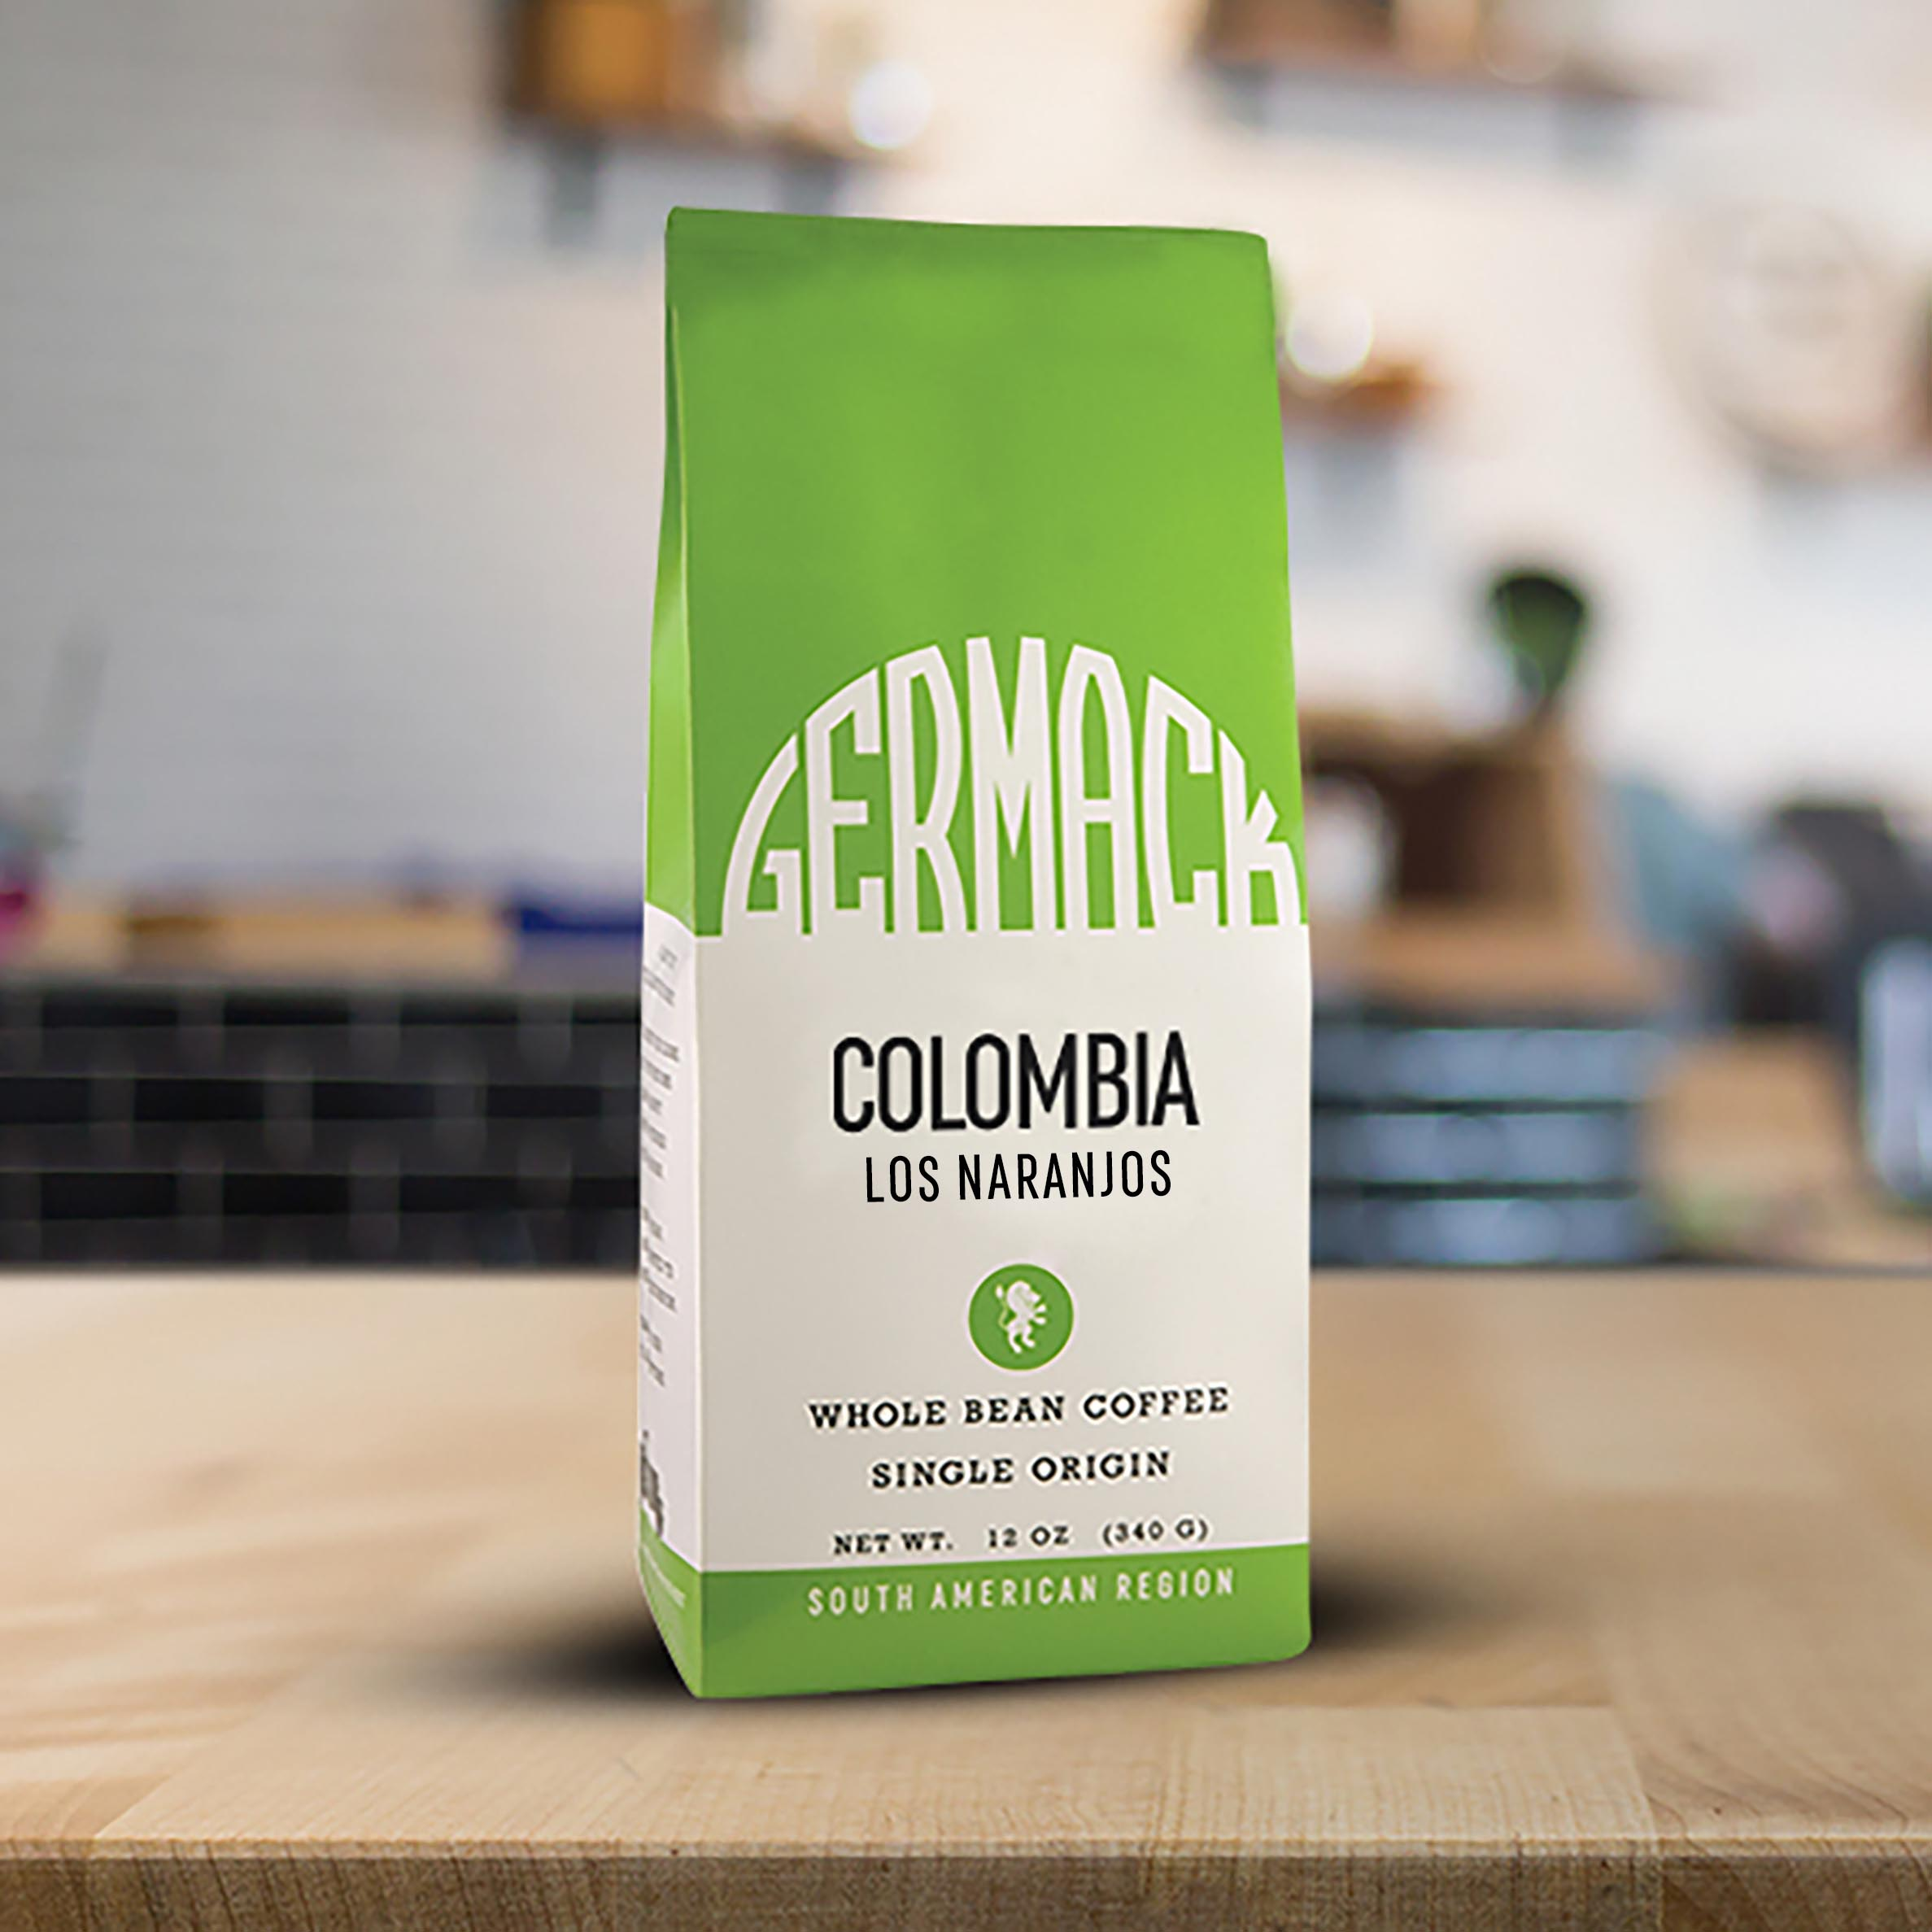 Picture Germack Coffee Colombia Los Naranjos - 12 oz